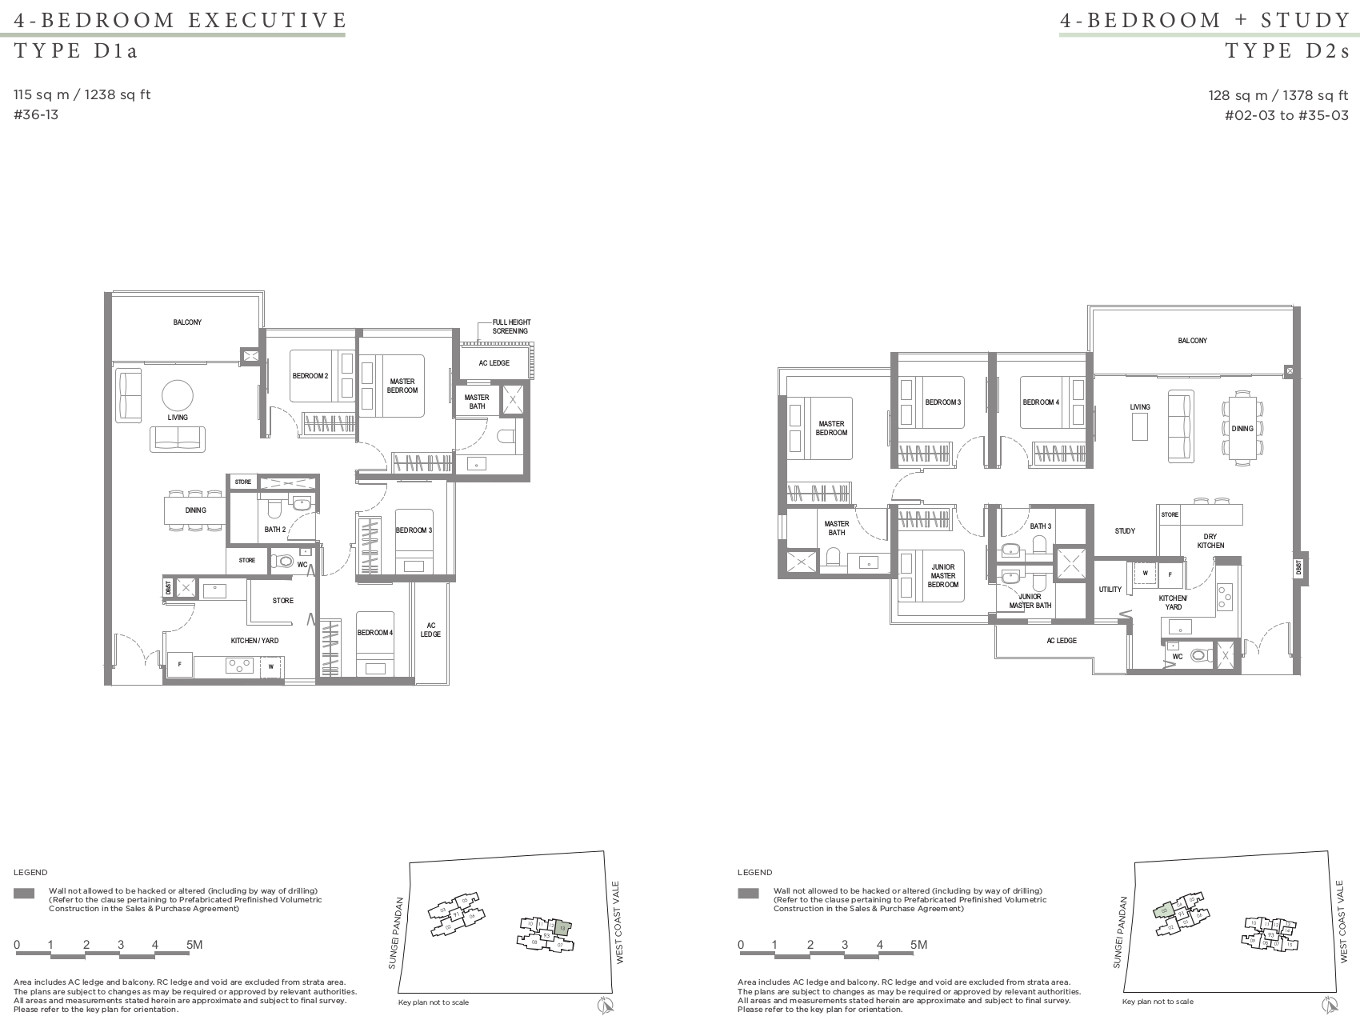 Twin VEW Condo Floor Plan 4 Bedroom Types D1a & D2s